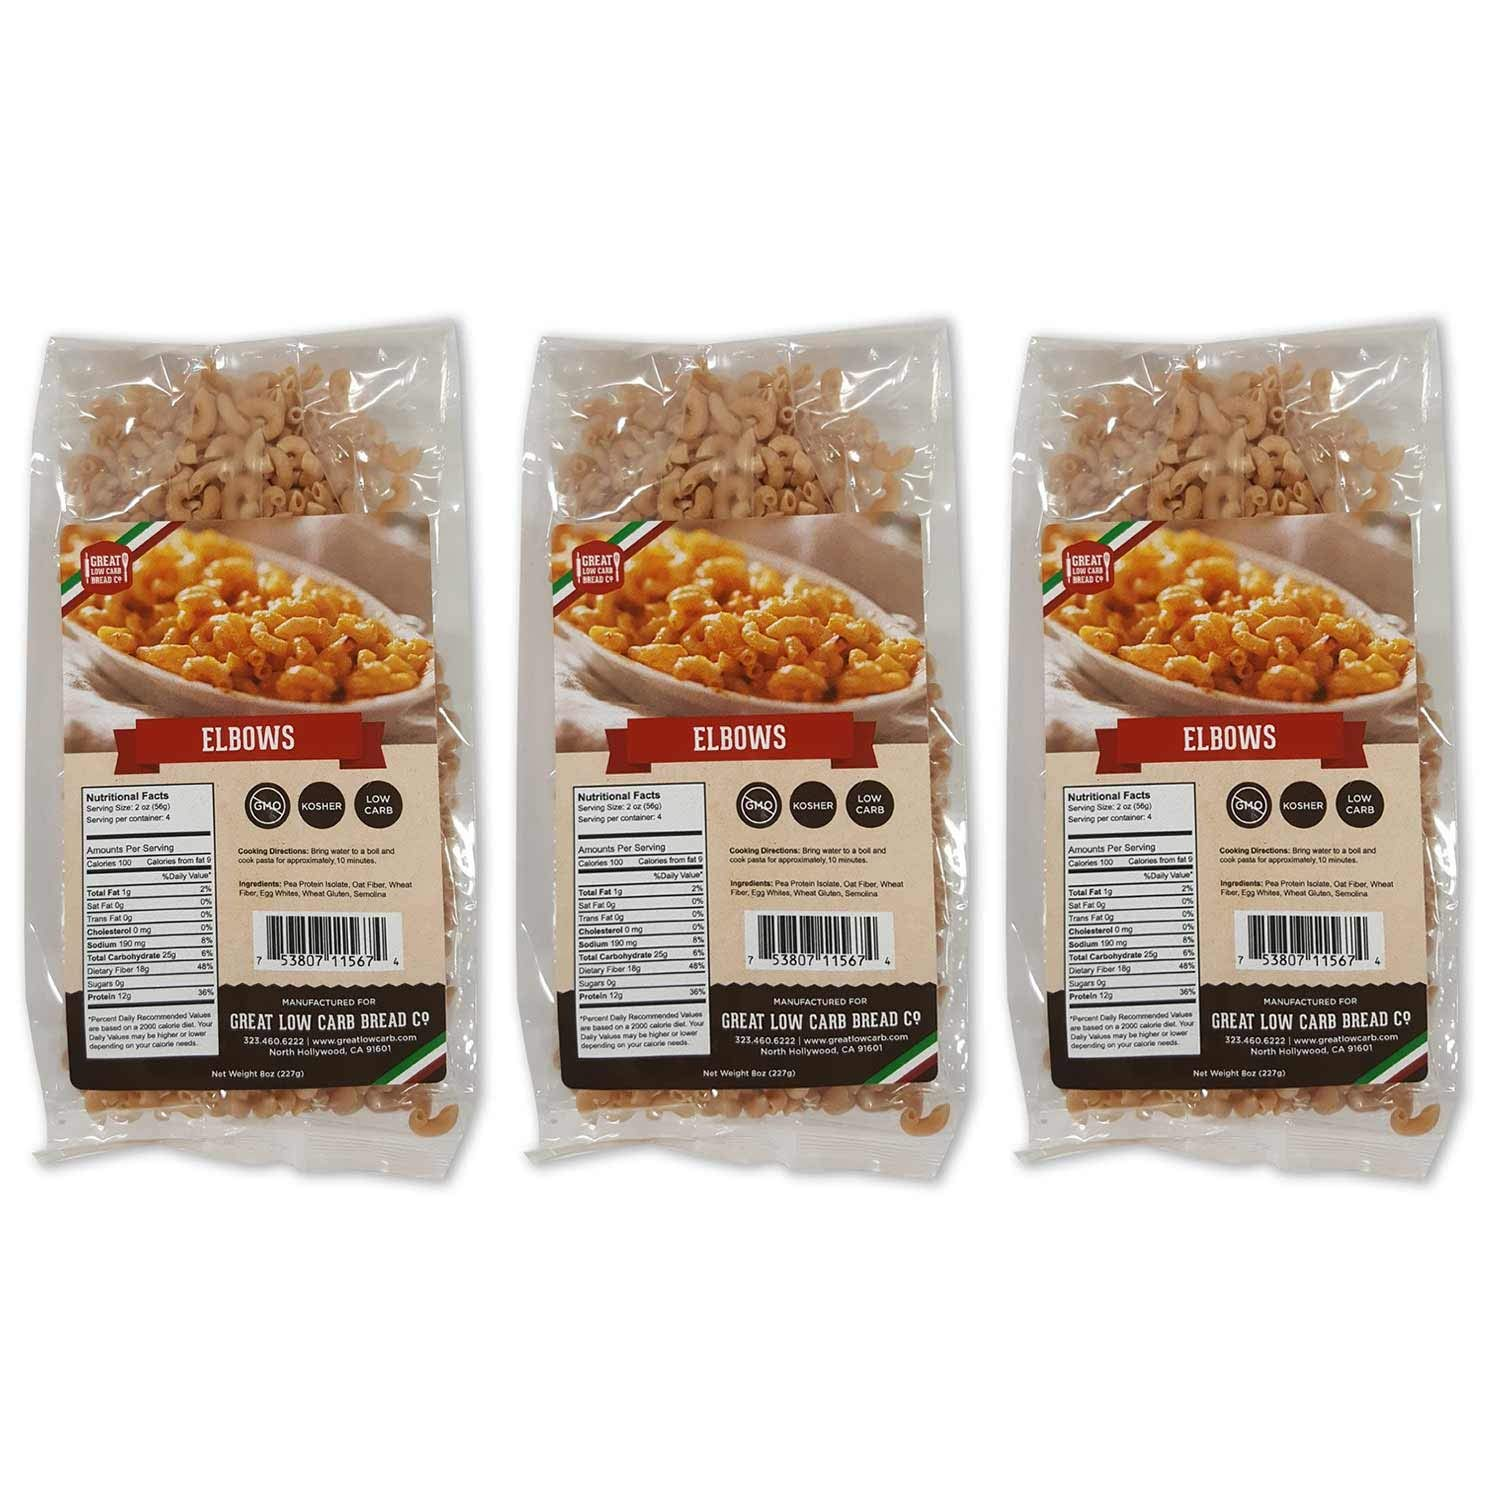 Low Carb Pasta Keto Great 7g Company Don't miss the OFFicial campaign Net Bread